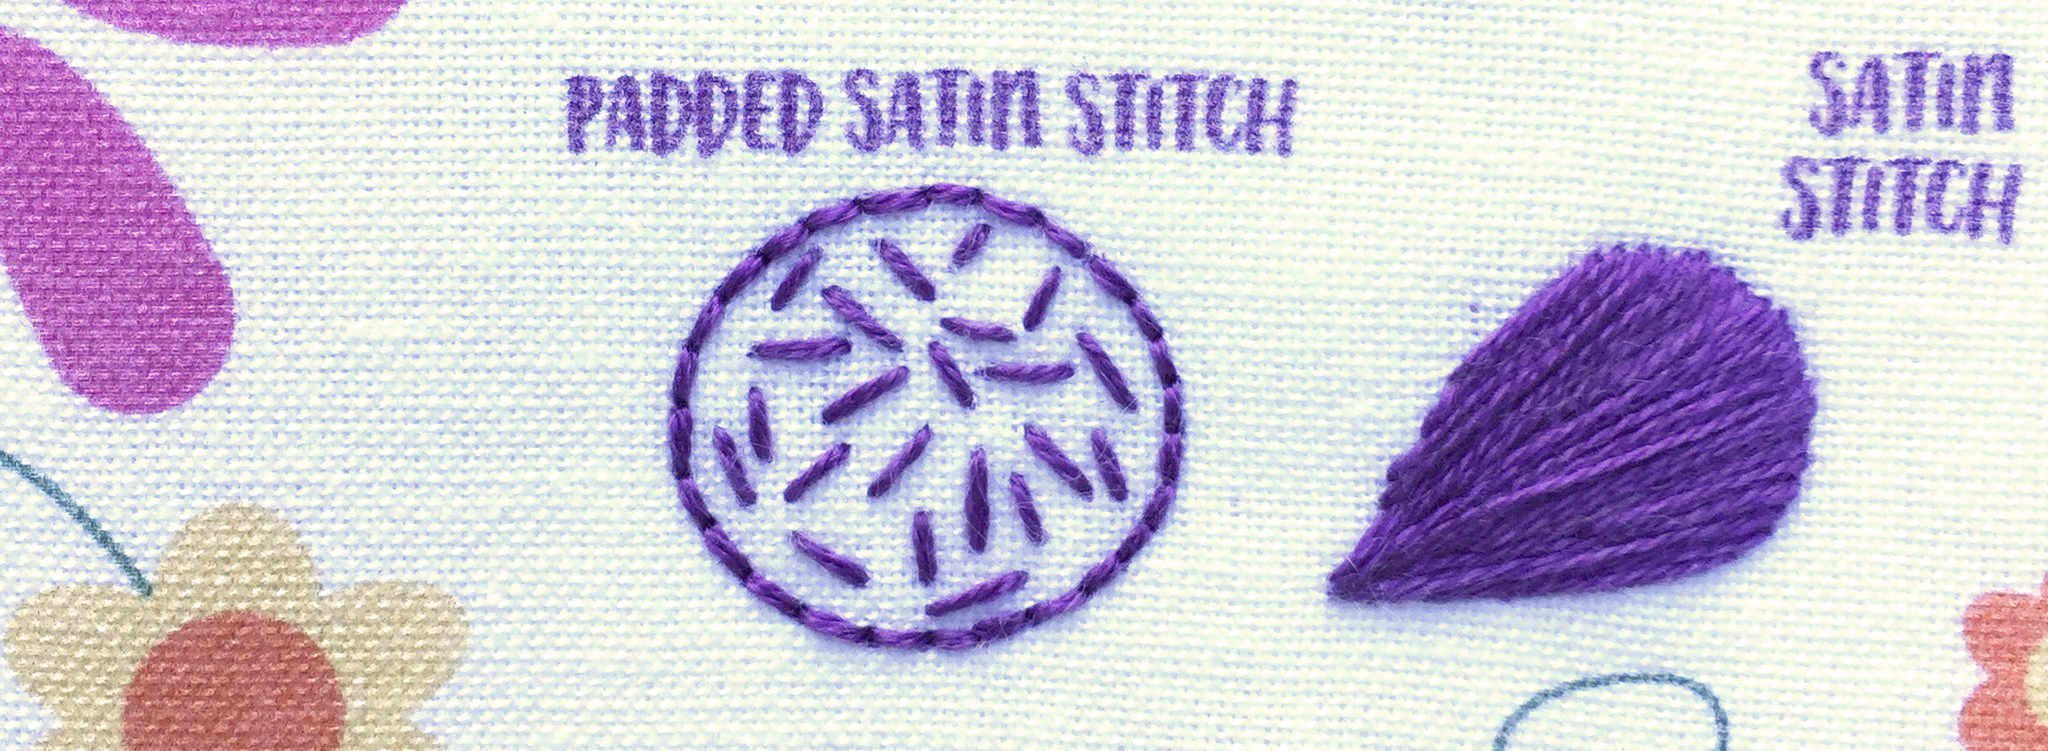 Padded Satin Stitch 2